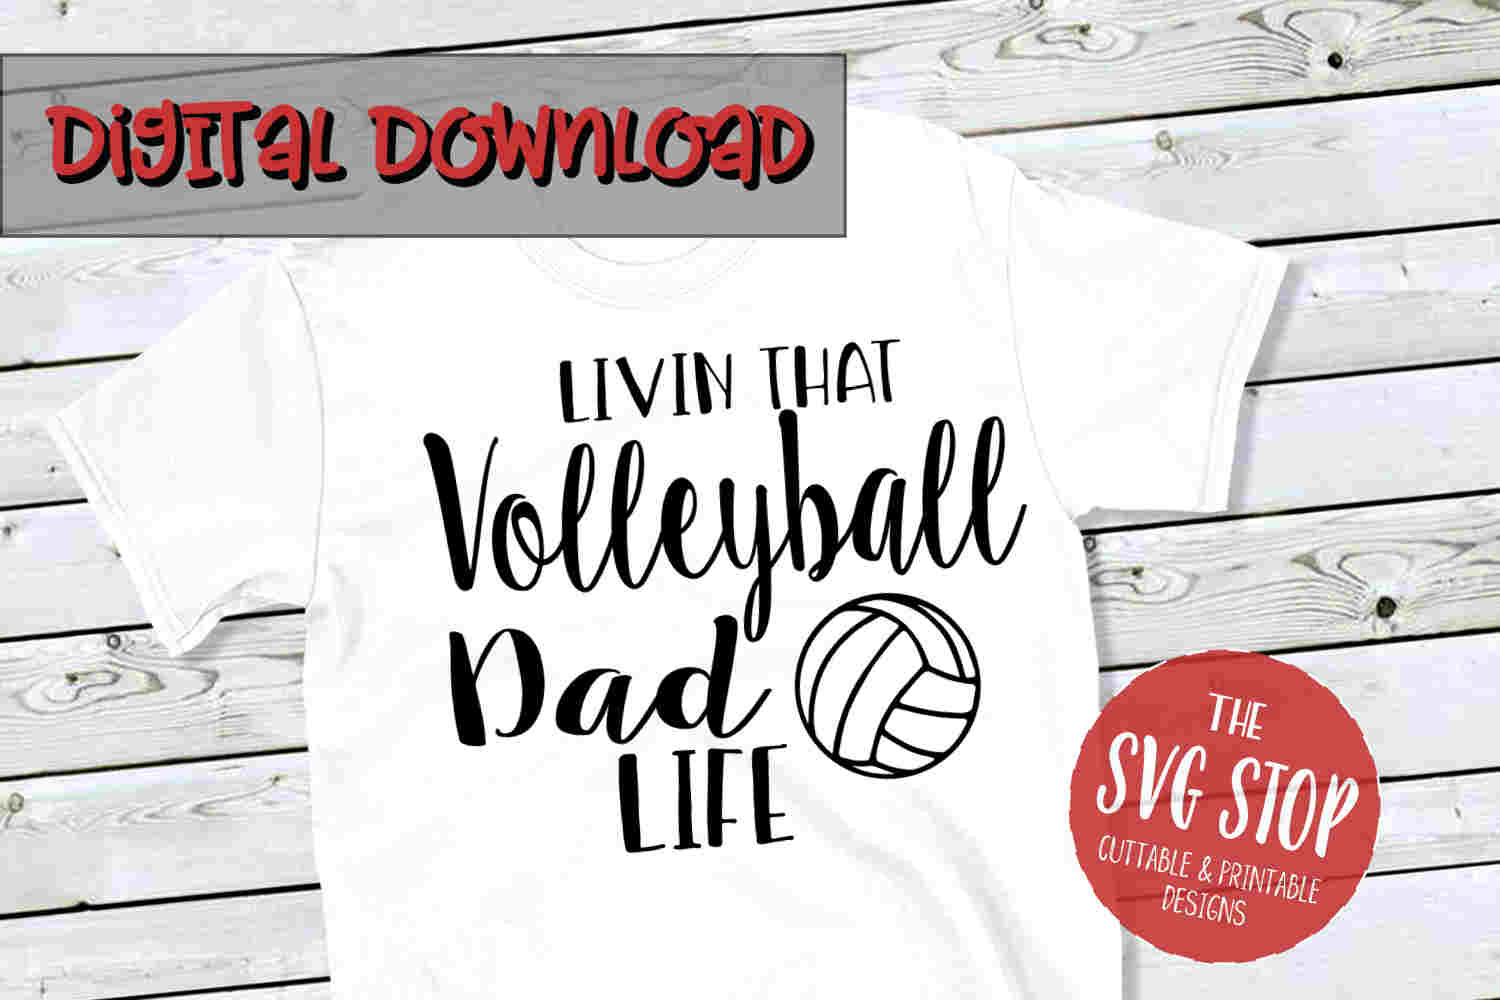 Volleyball Dad Life -SVG, PNG, DXF example image 1